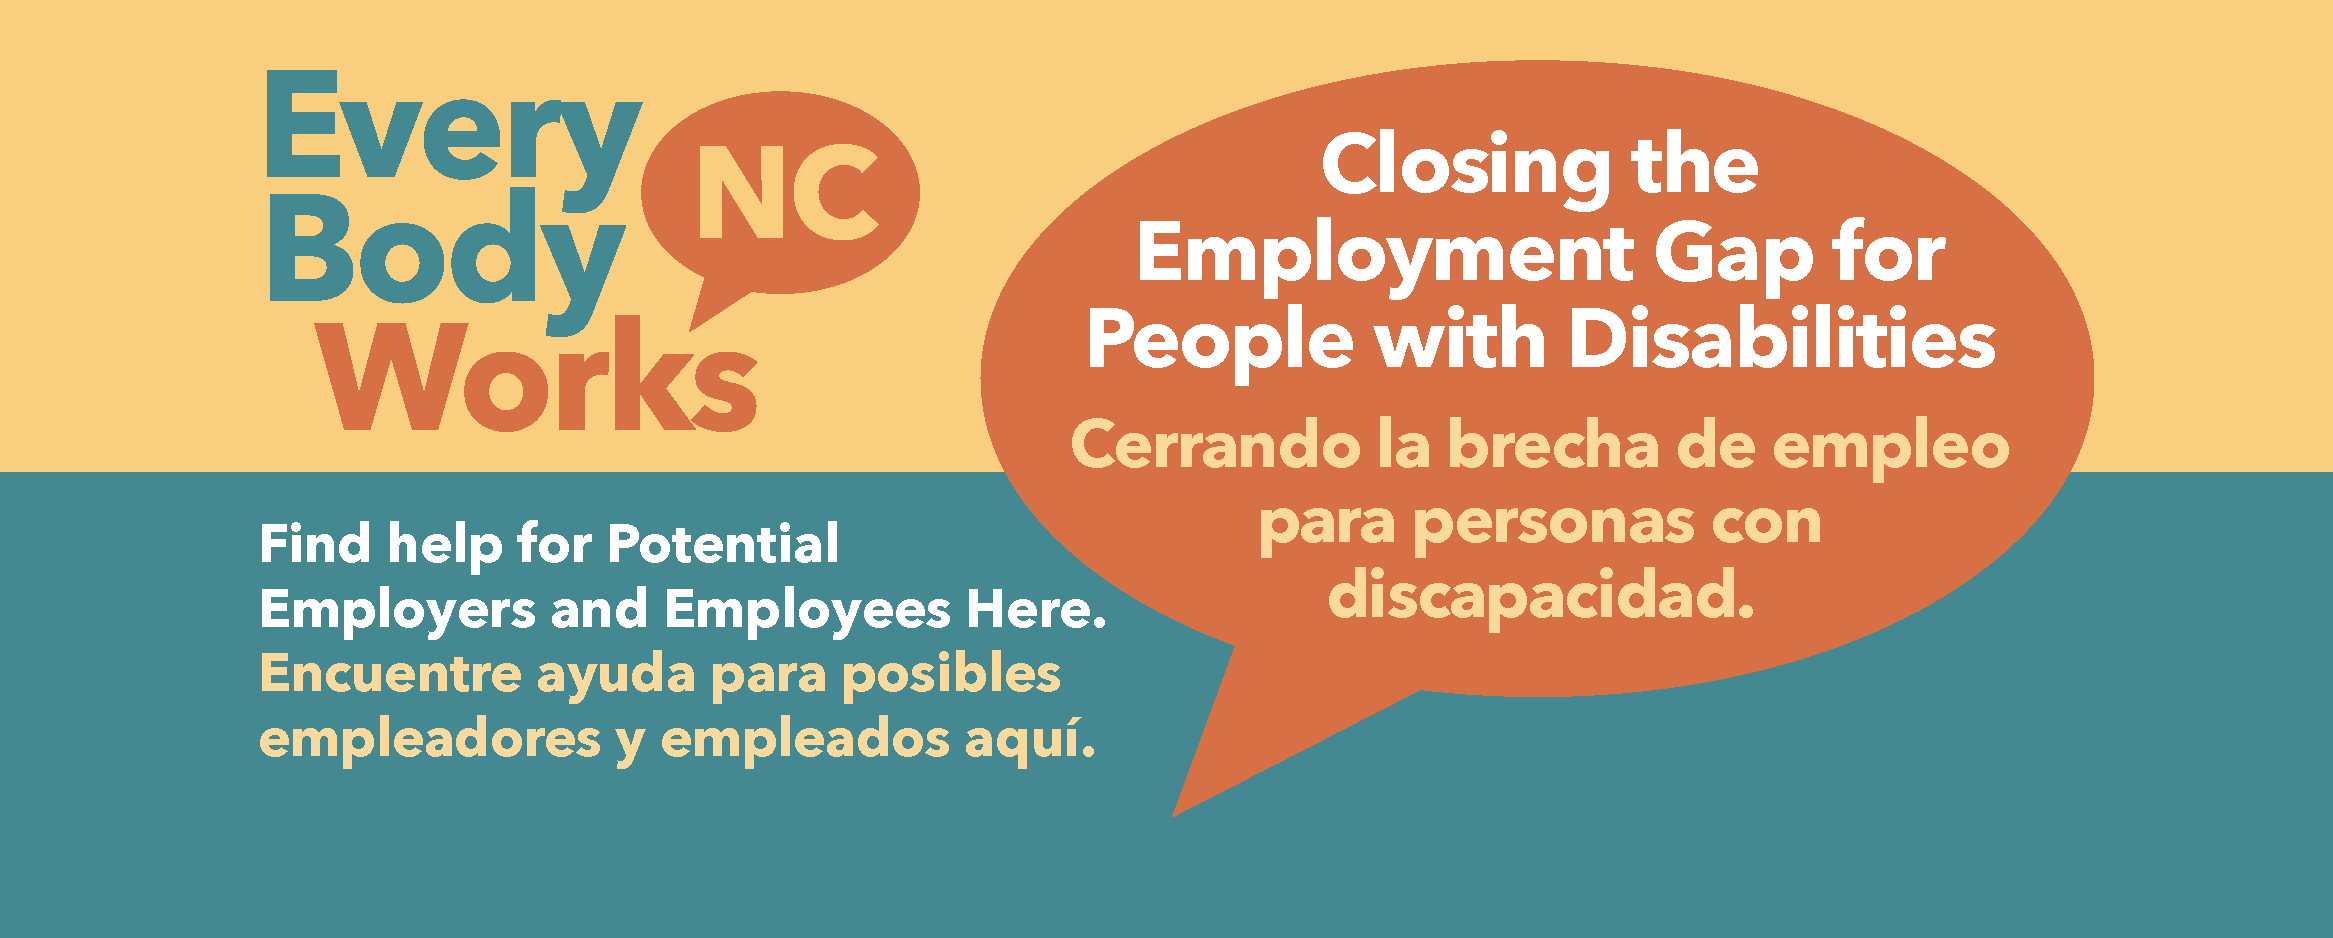 EveryBody Works NC - Closing the Employment Gap for People with Disabilities Cerrando la brecha de empleo para personas con discapacidad.